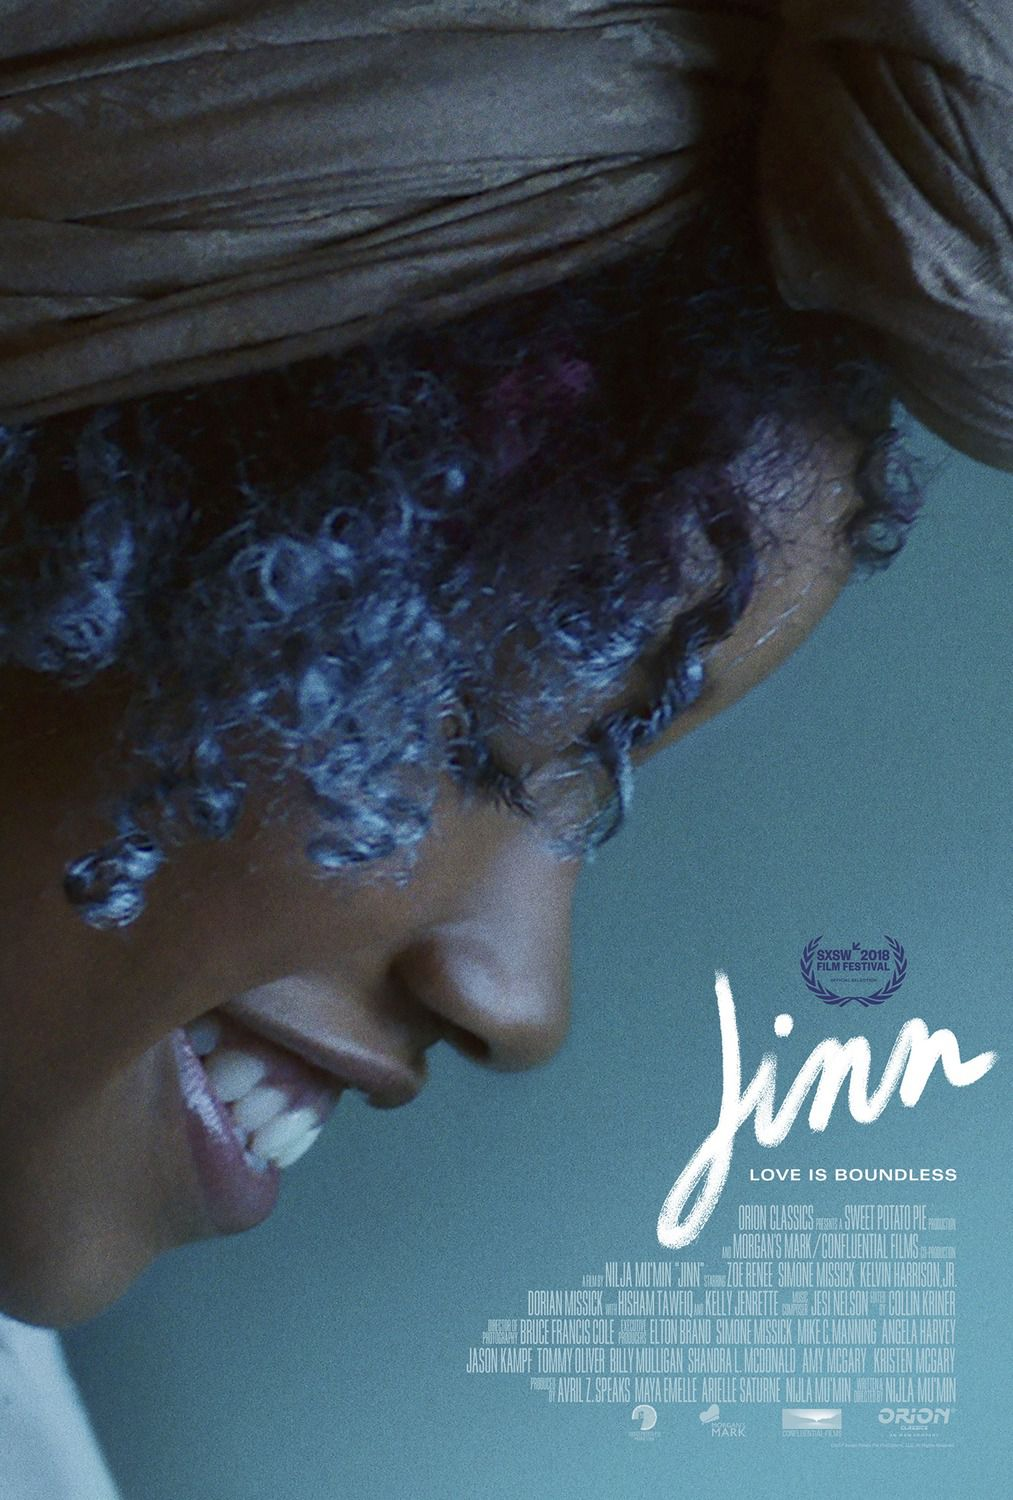 Jinn (2018) Love is boundless - film poster